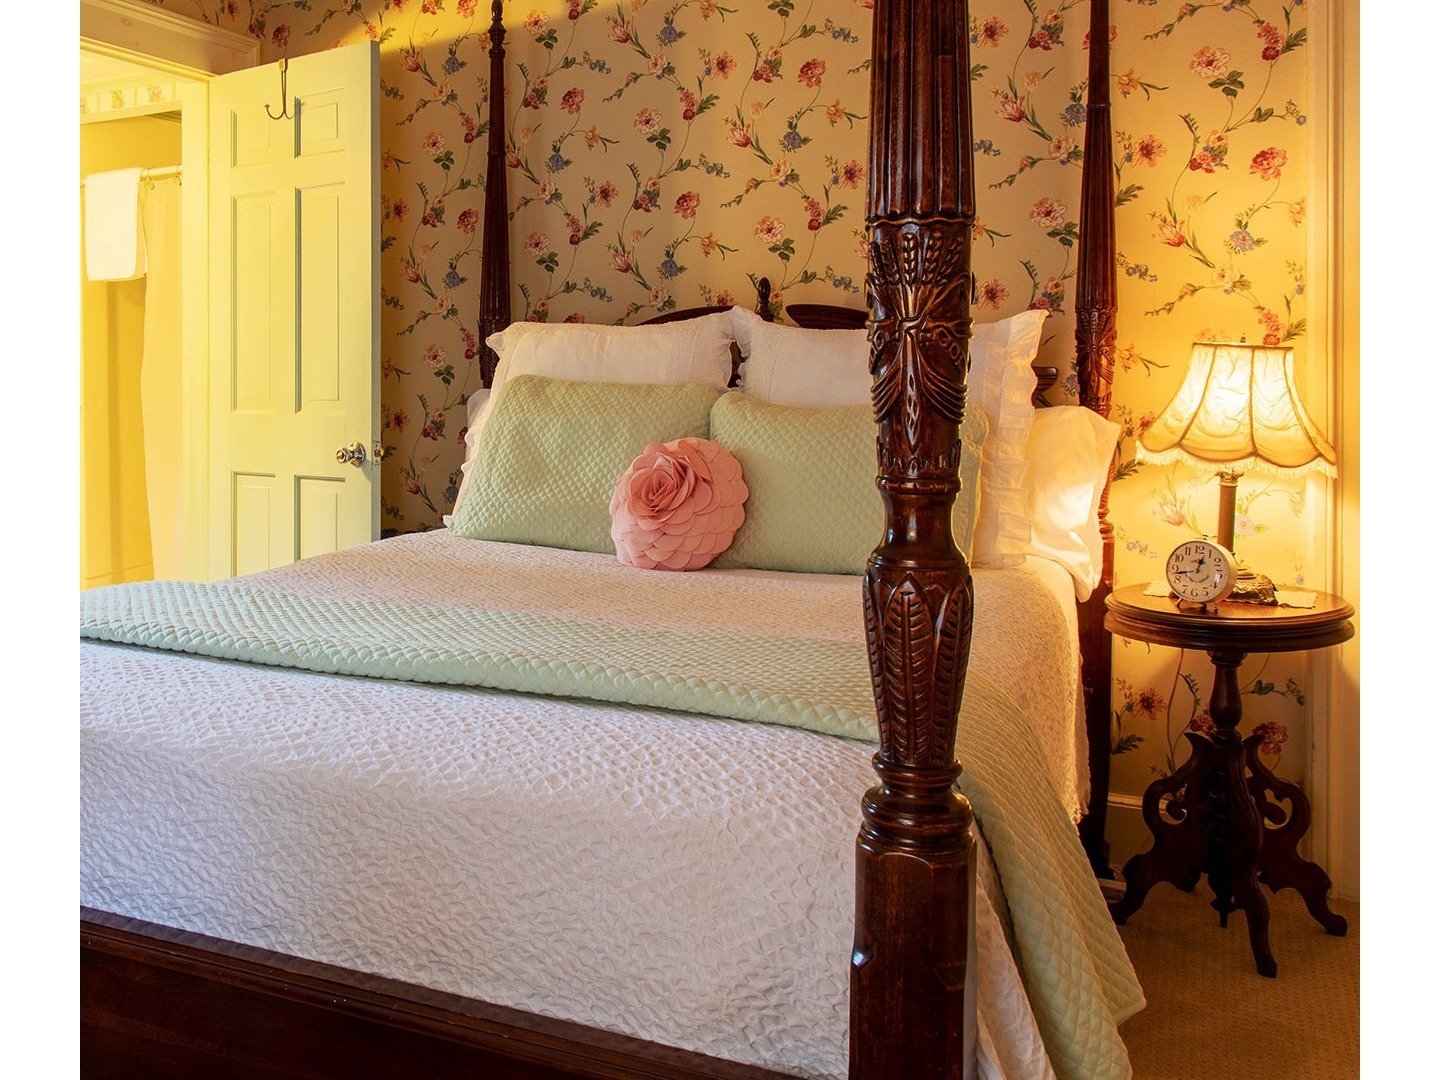 A bedroom with a large bed in a room at Westbrook Inn Bed & Breakfast.